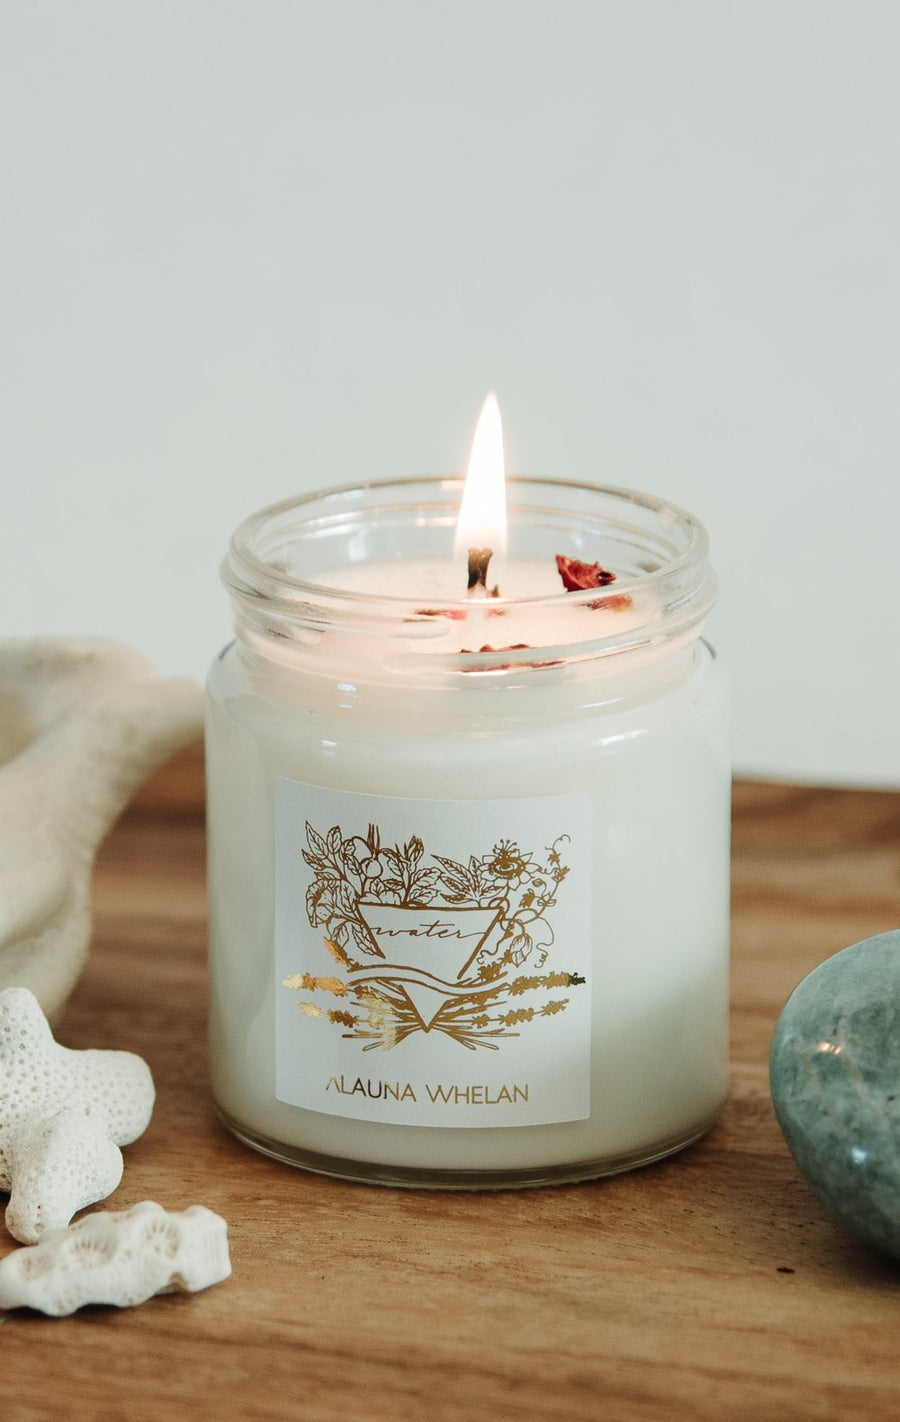 Alauna Whelan - Water Intention Candle